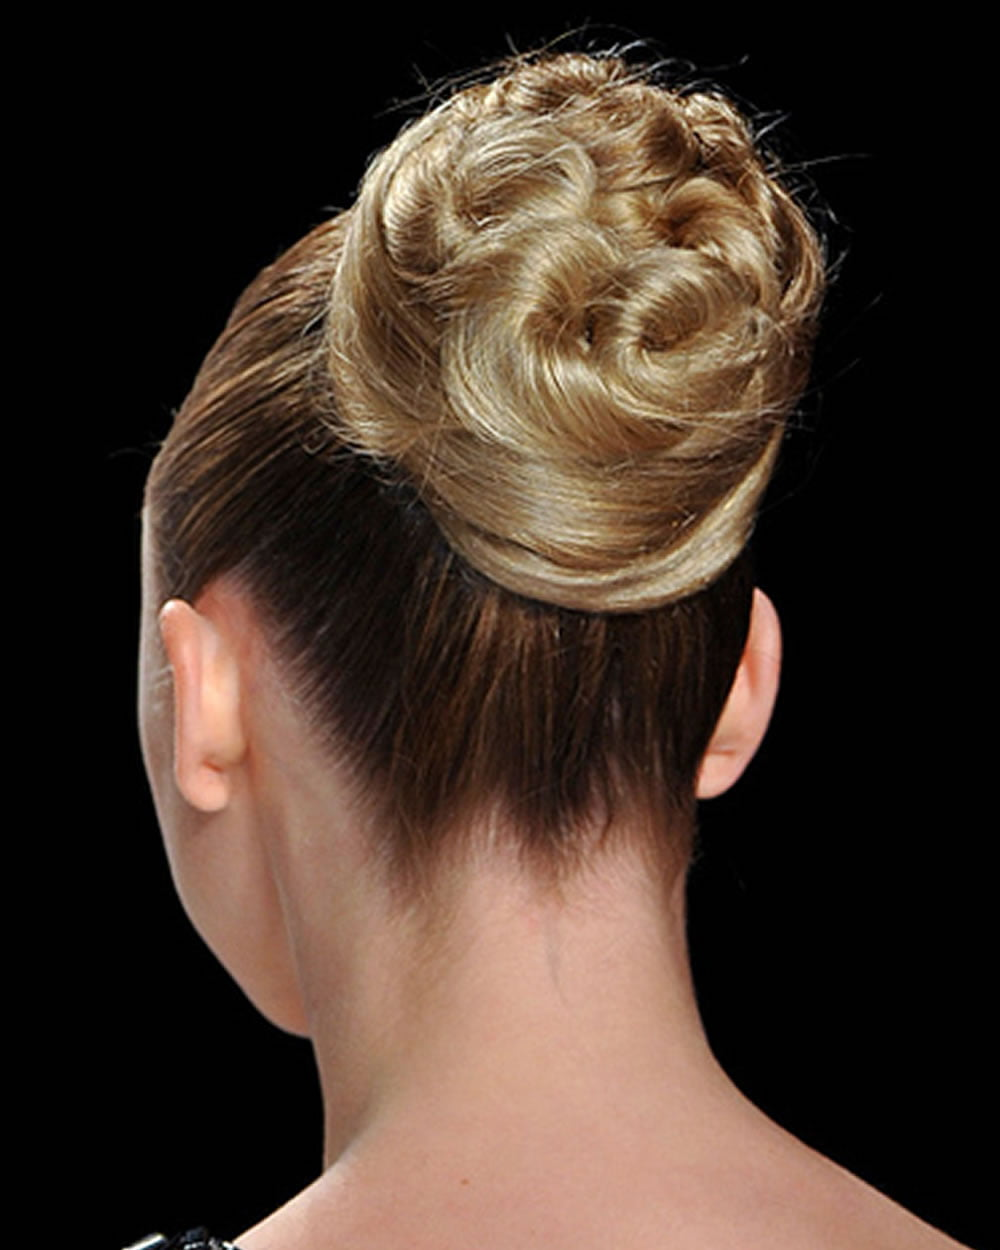 Bun Hair 2018 - Trend Bun Hairstyles in 2017